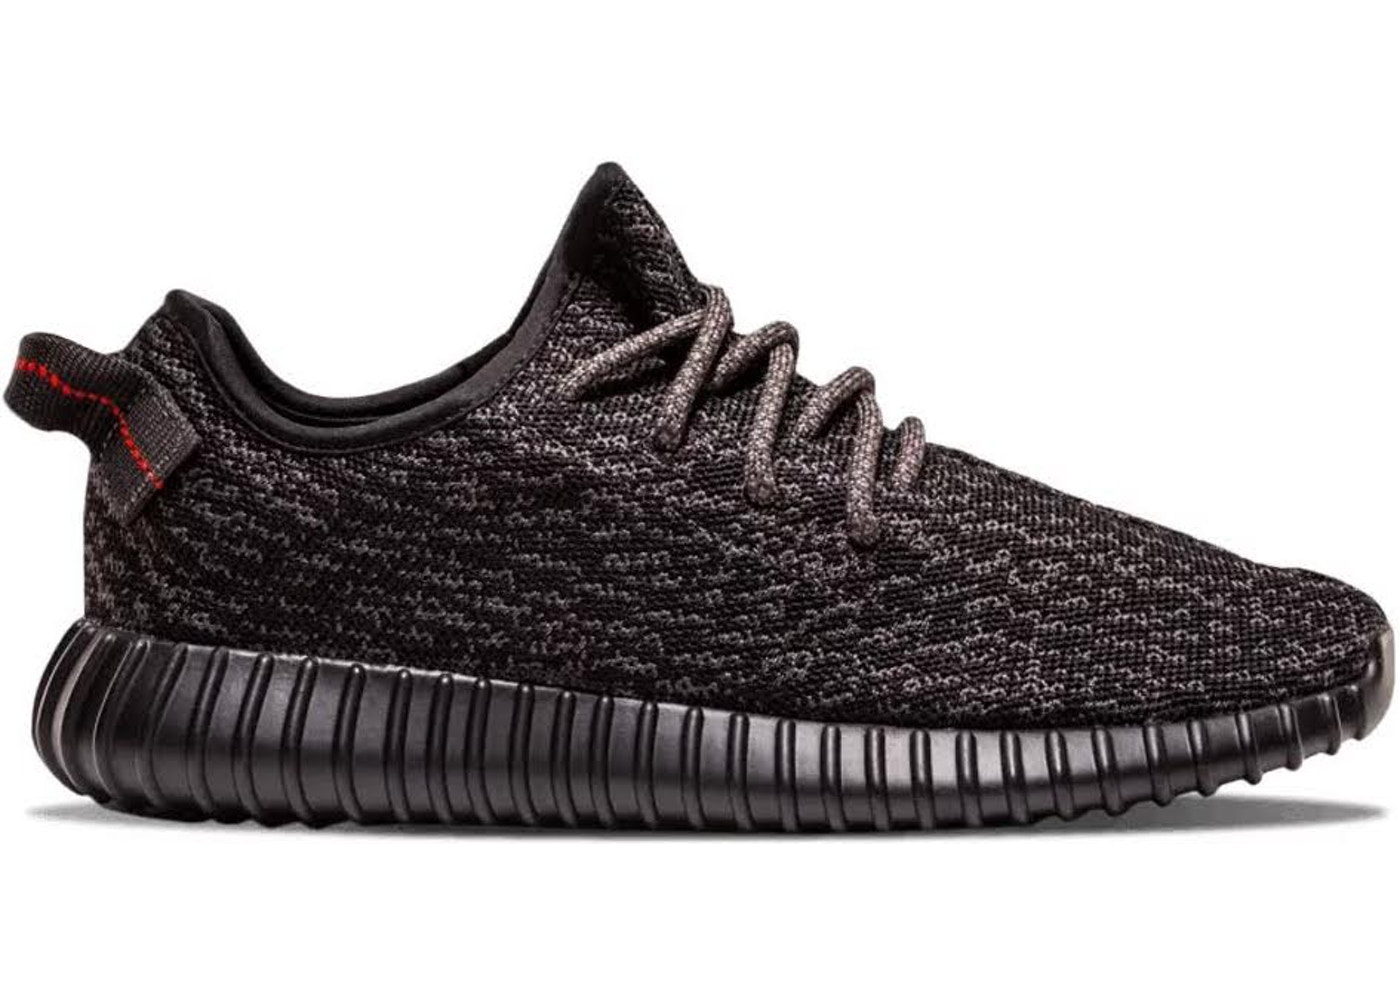 a11a9ba1c2f adidas Yeezy Size 17 Shoes - Featured